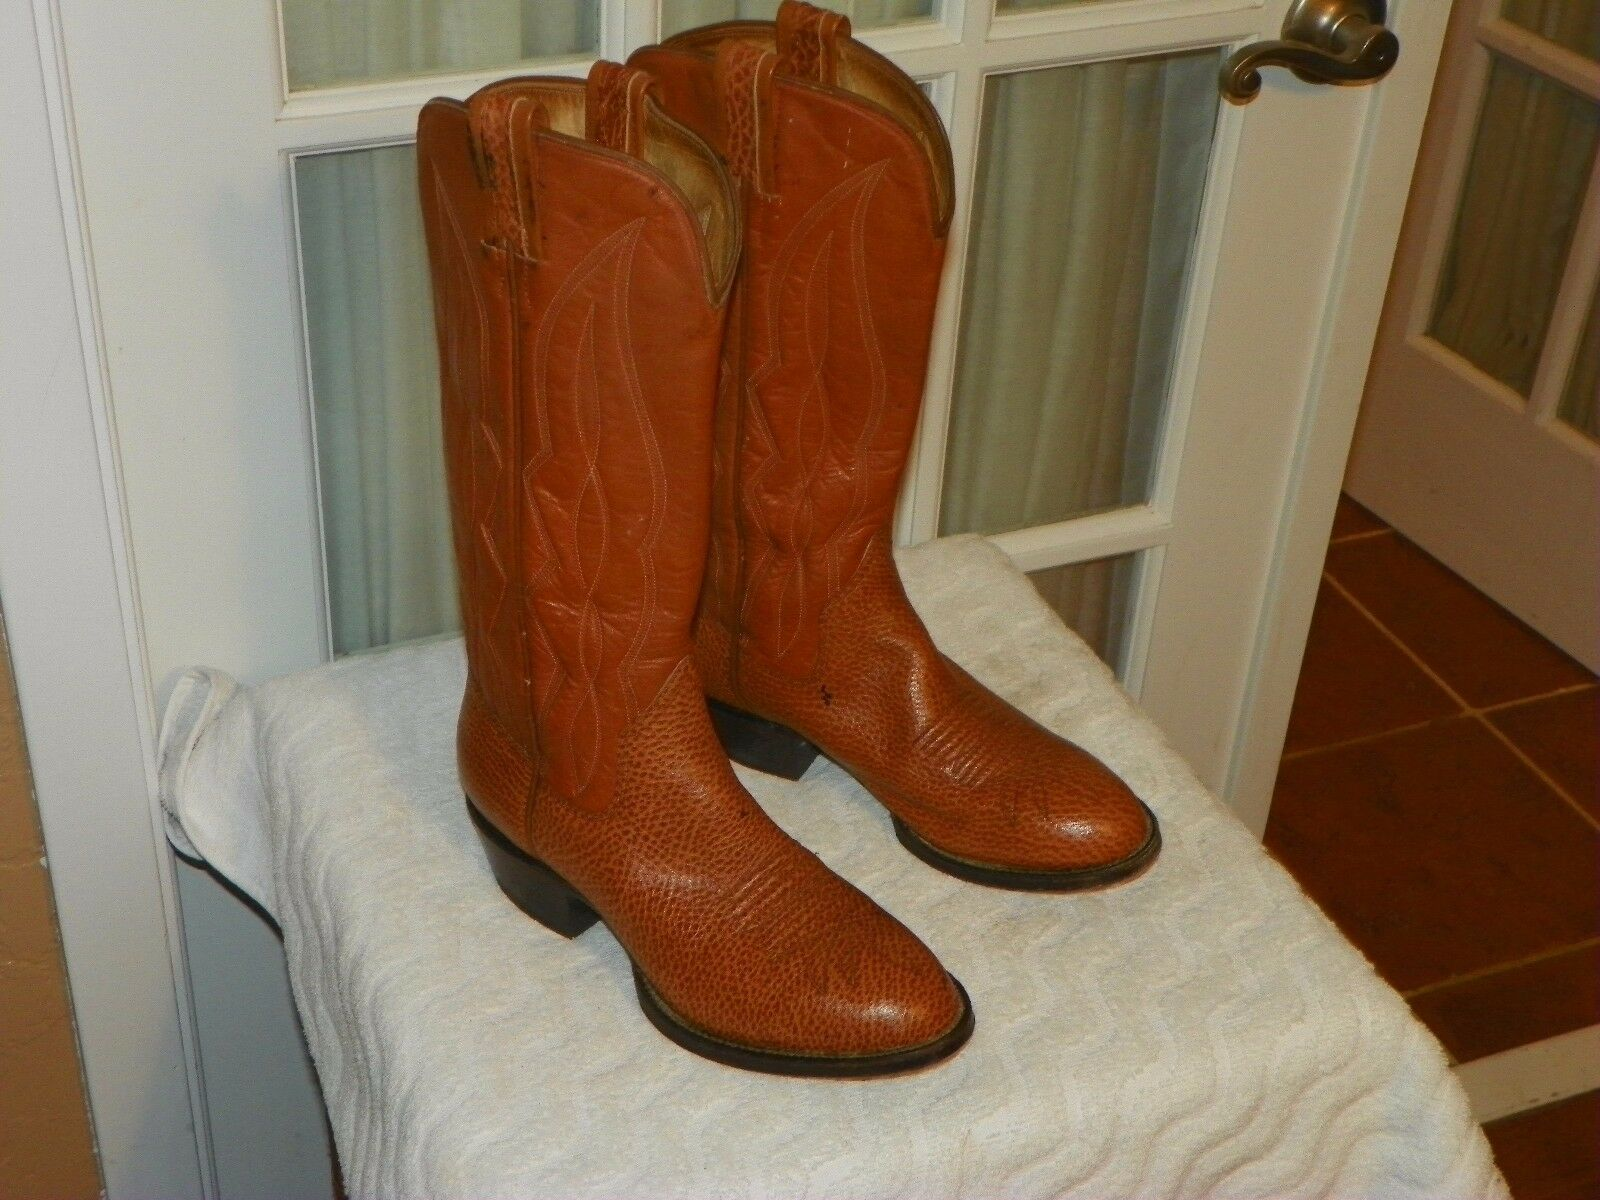 Men's Vintage Sanders by Panhandle Slim Brown Leather Cowboy Boots size 7.5 D